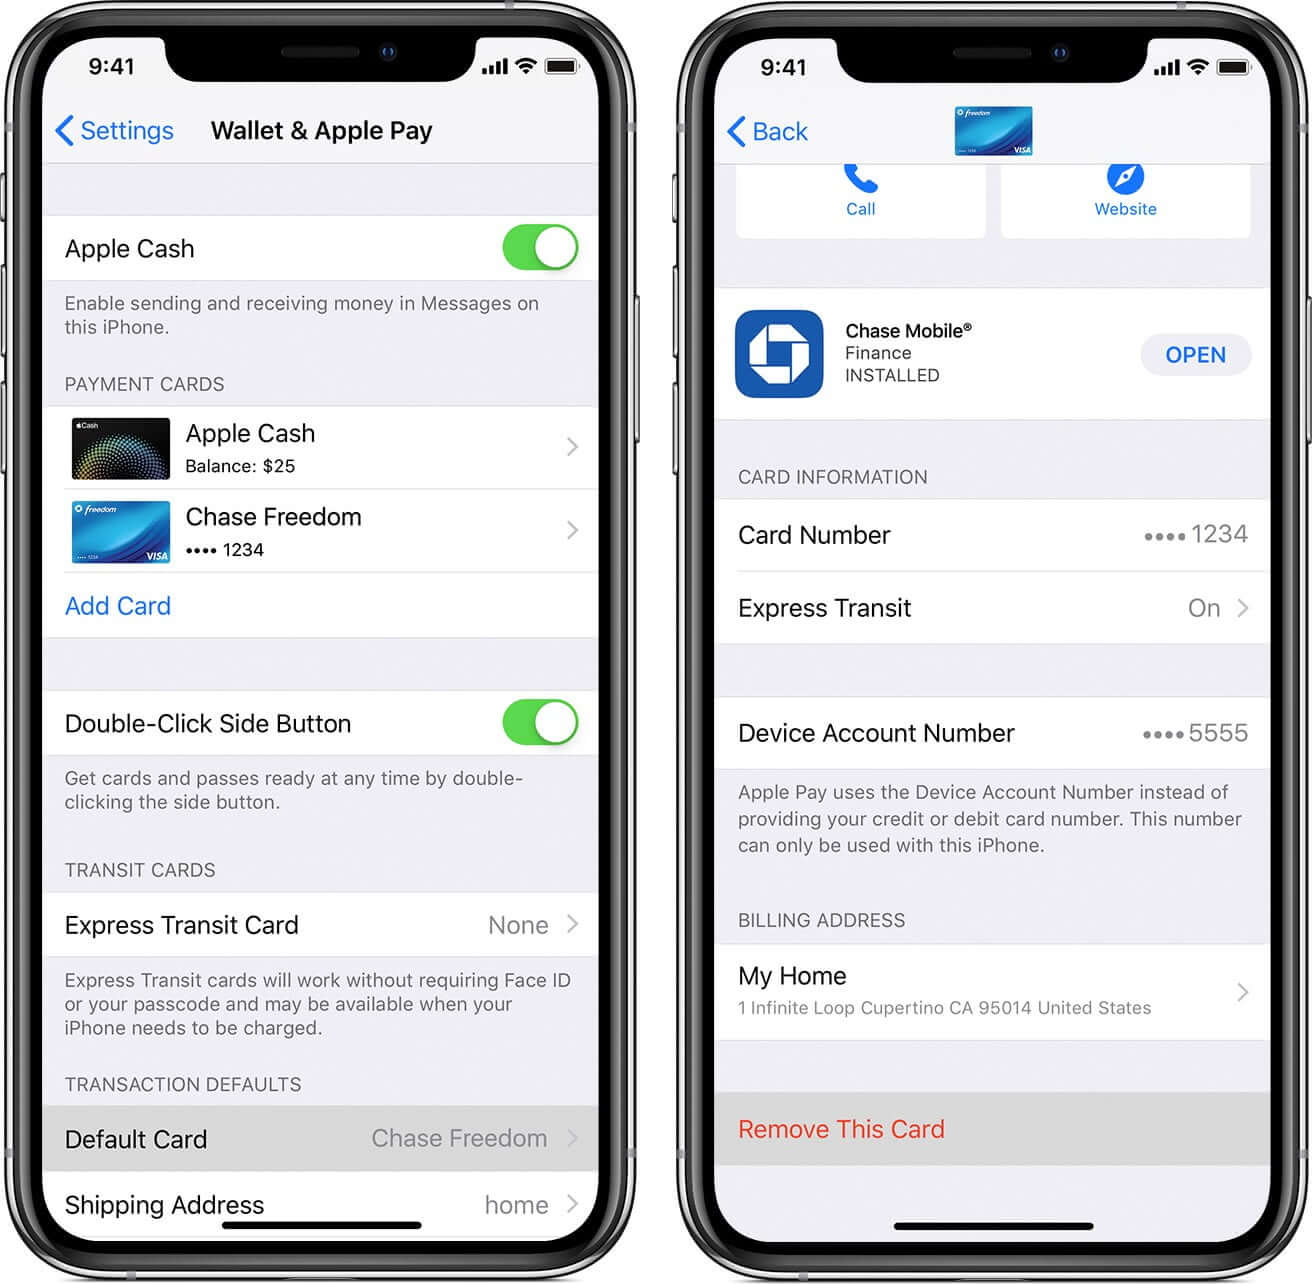 Delete Credit Card from Apple Pay on iPhone